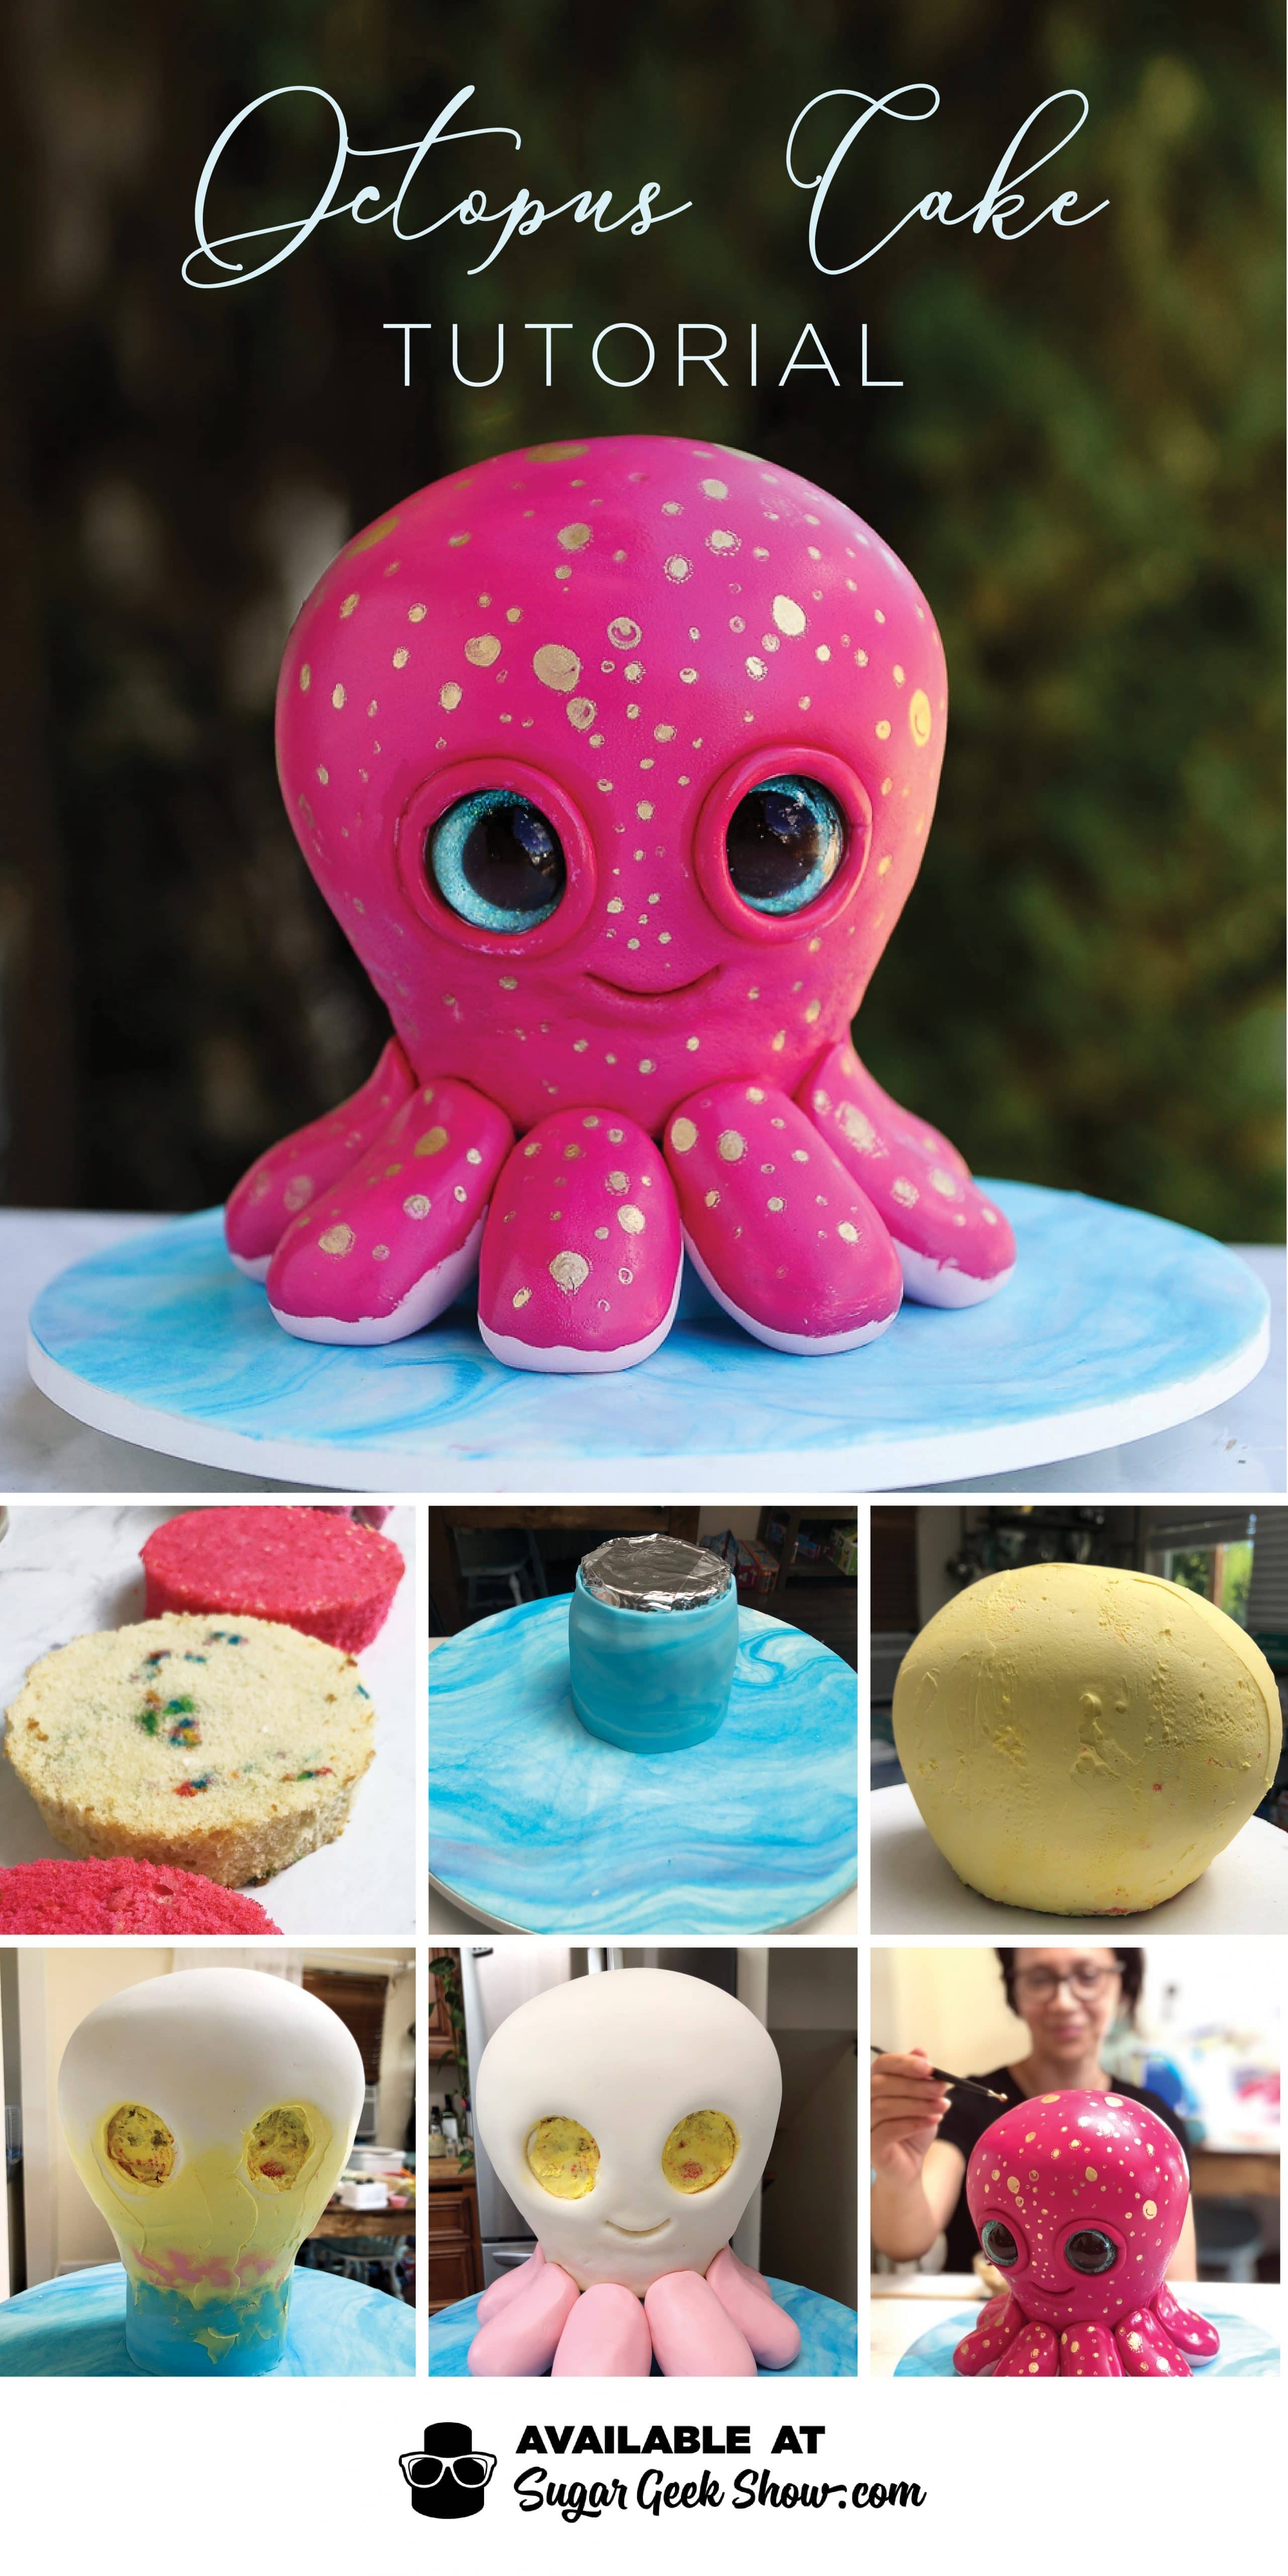 This adorable octopus cake is so fun to make! Easy cake structure, simple sculpting, edible glitter eyes and so much more!